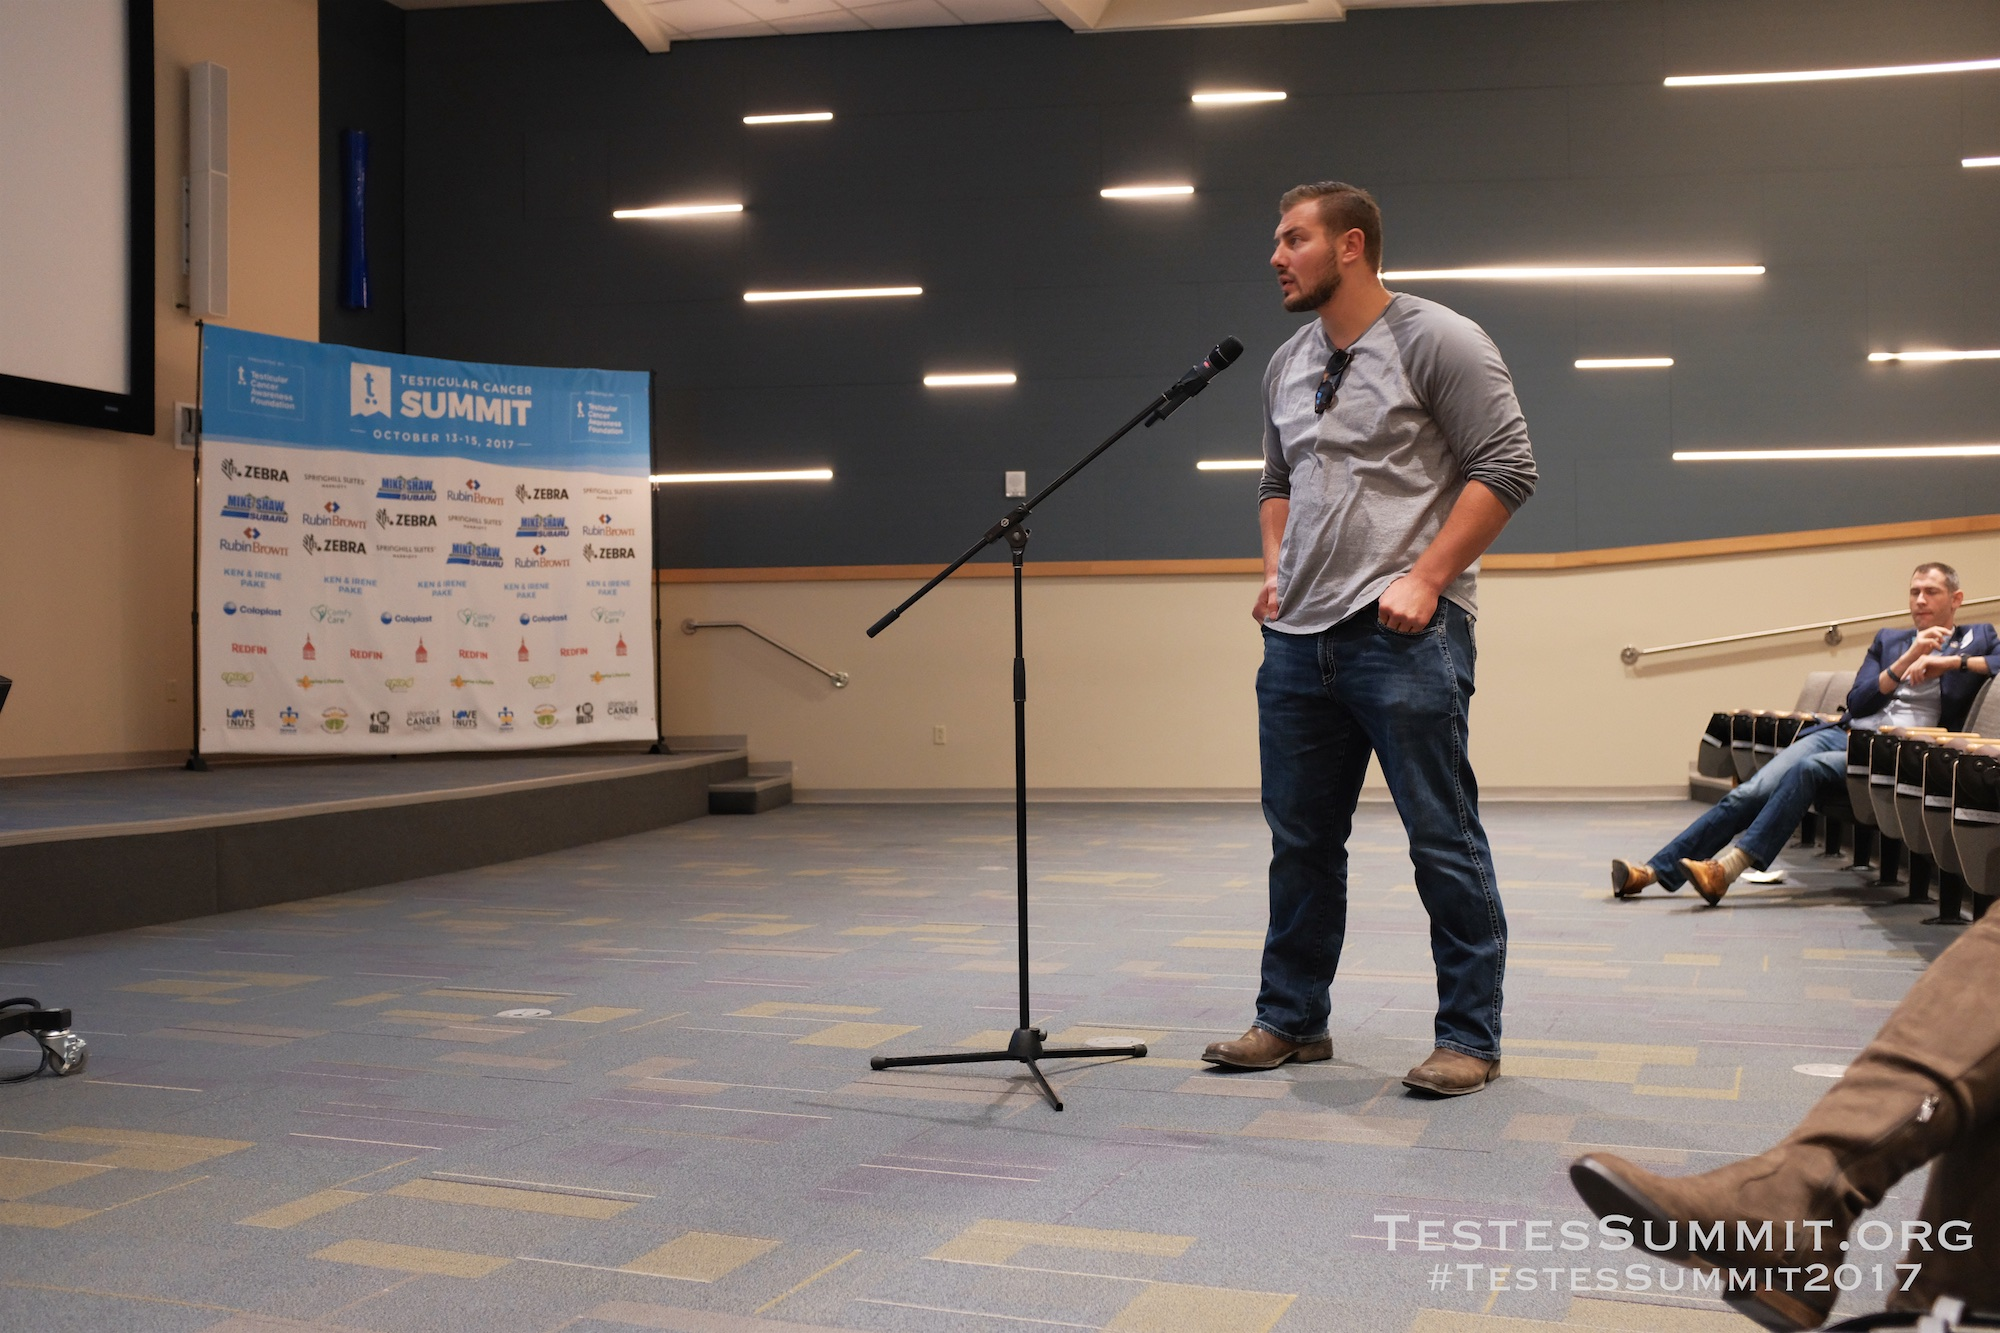 TestesSummit2017-161_DSCF5731-HD-WM.jpg